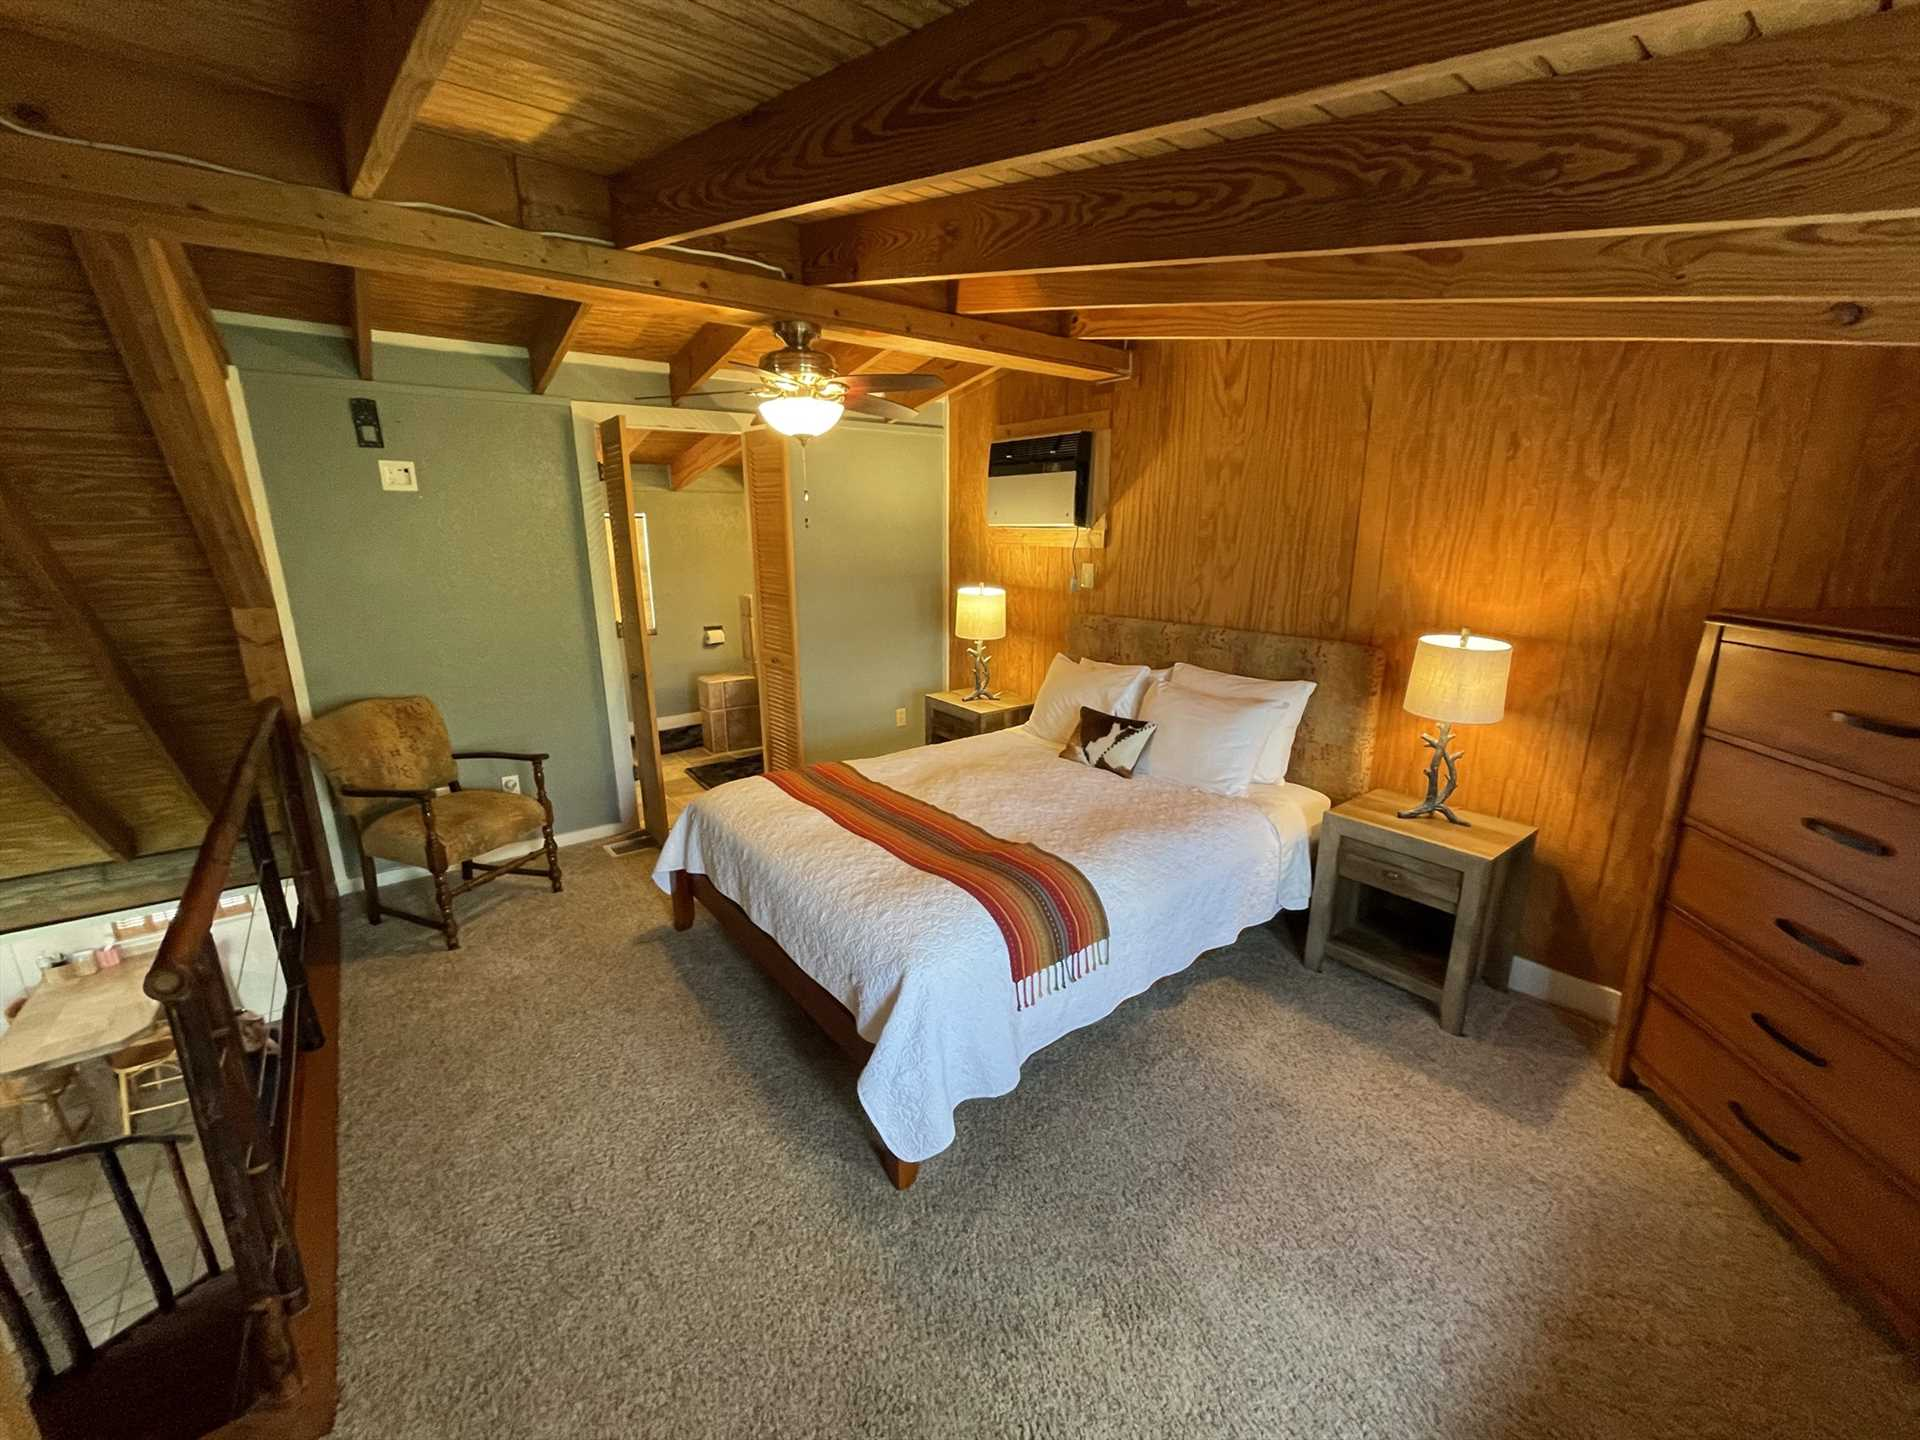 Mellow woodwork and ample storage space creates a welcoming and hassle-free environment for our valued guests.